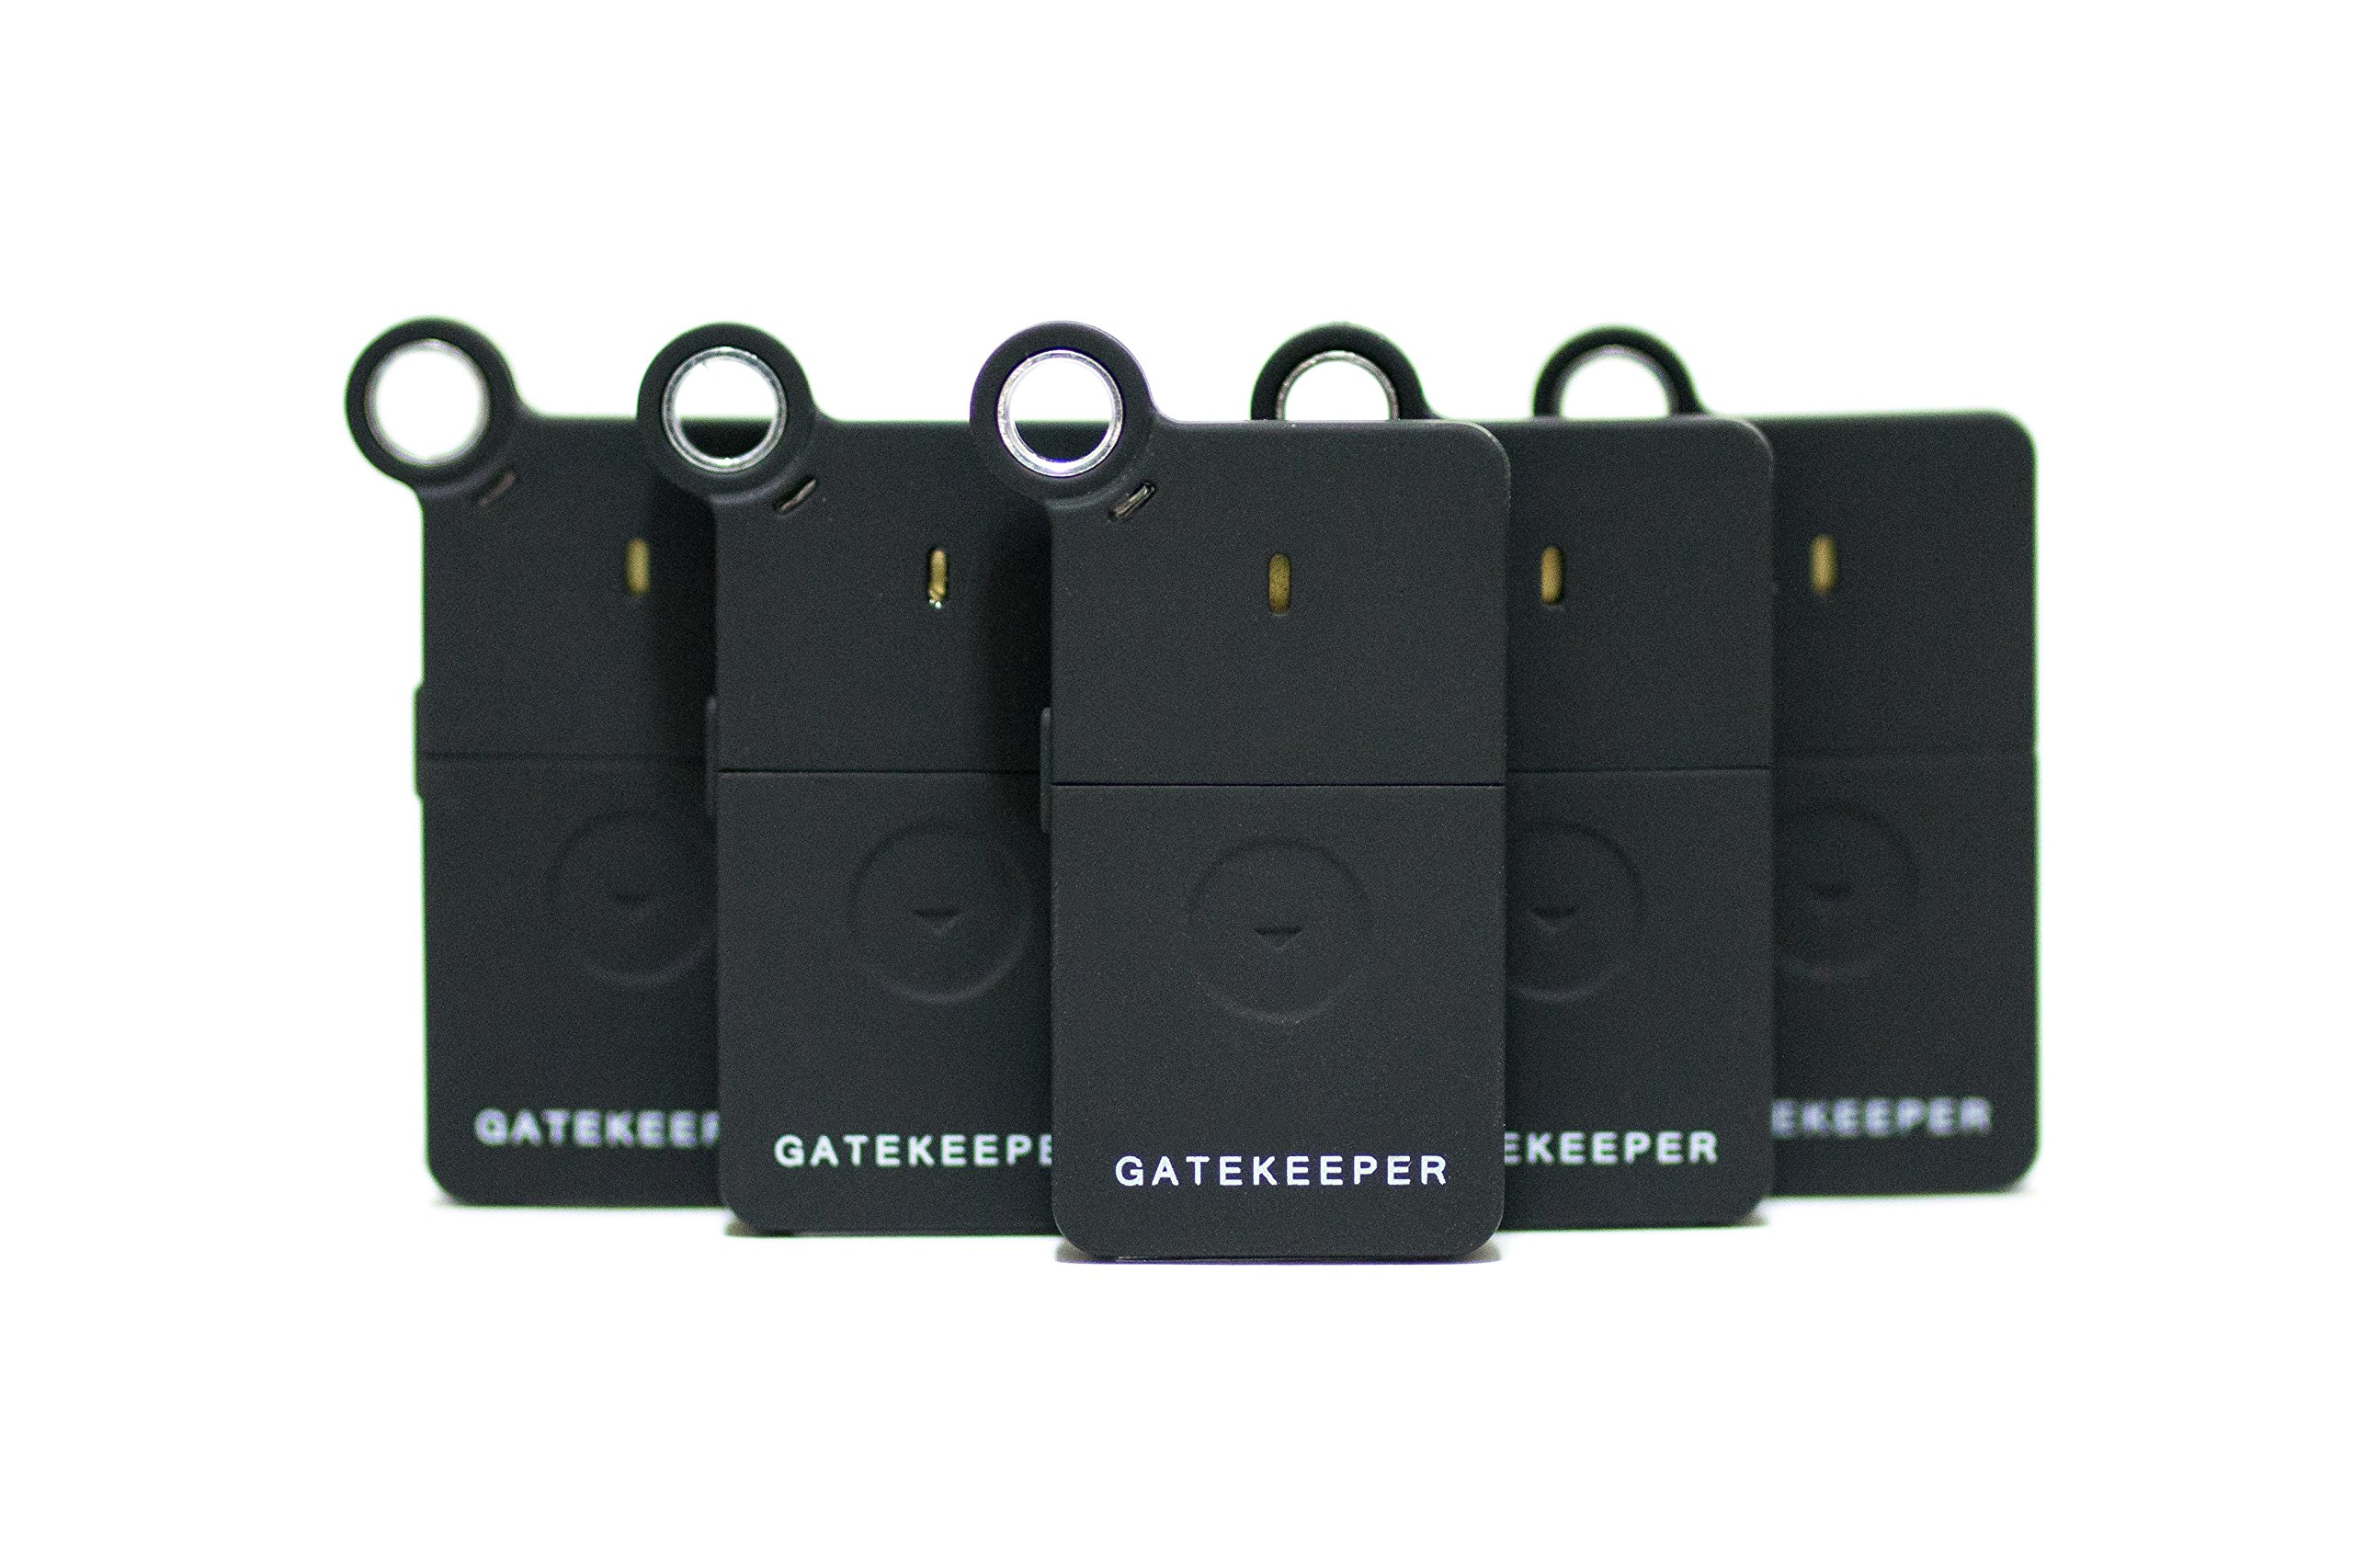 GateKeeper 2.5 Remote Control for your Computer with Military-Grade Encrypted Bluetooth SMART Key & Lock Authentication, Black 5-Pack